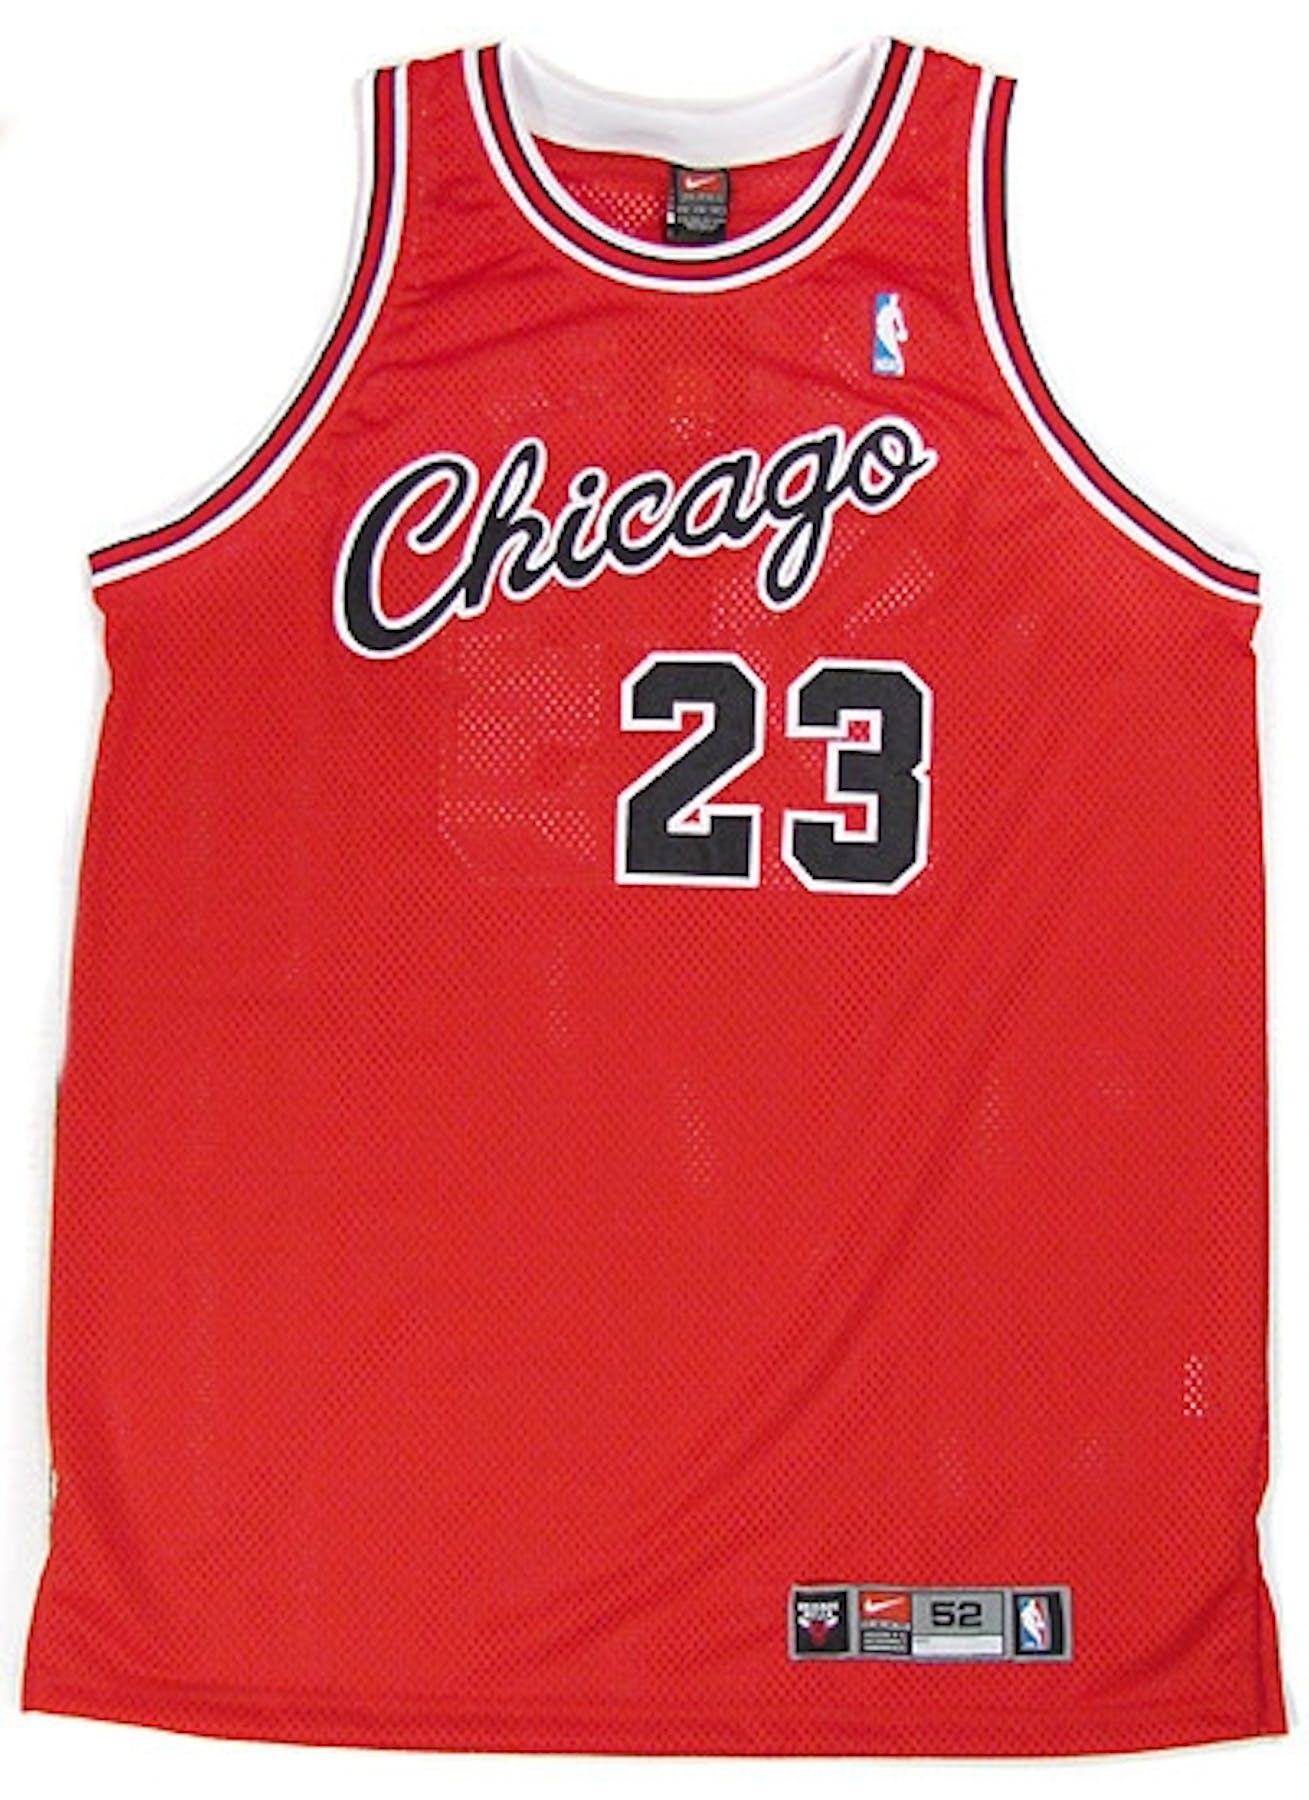 7fa1f218912 Michael Jordan Autographed Chicago Bulls Throwback Authentic ...